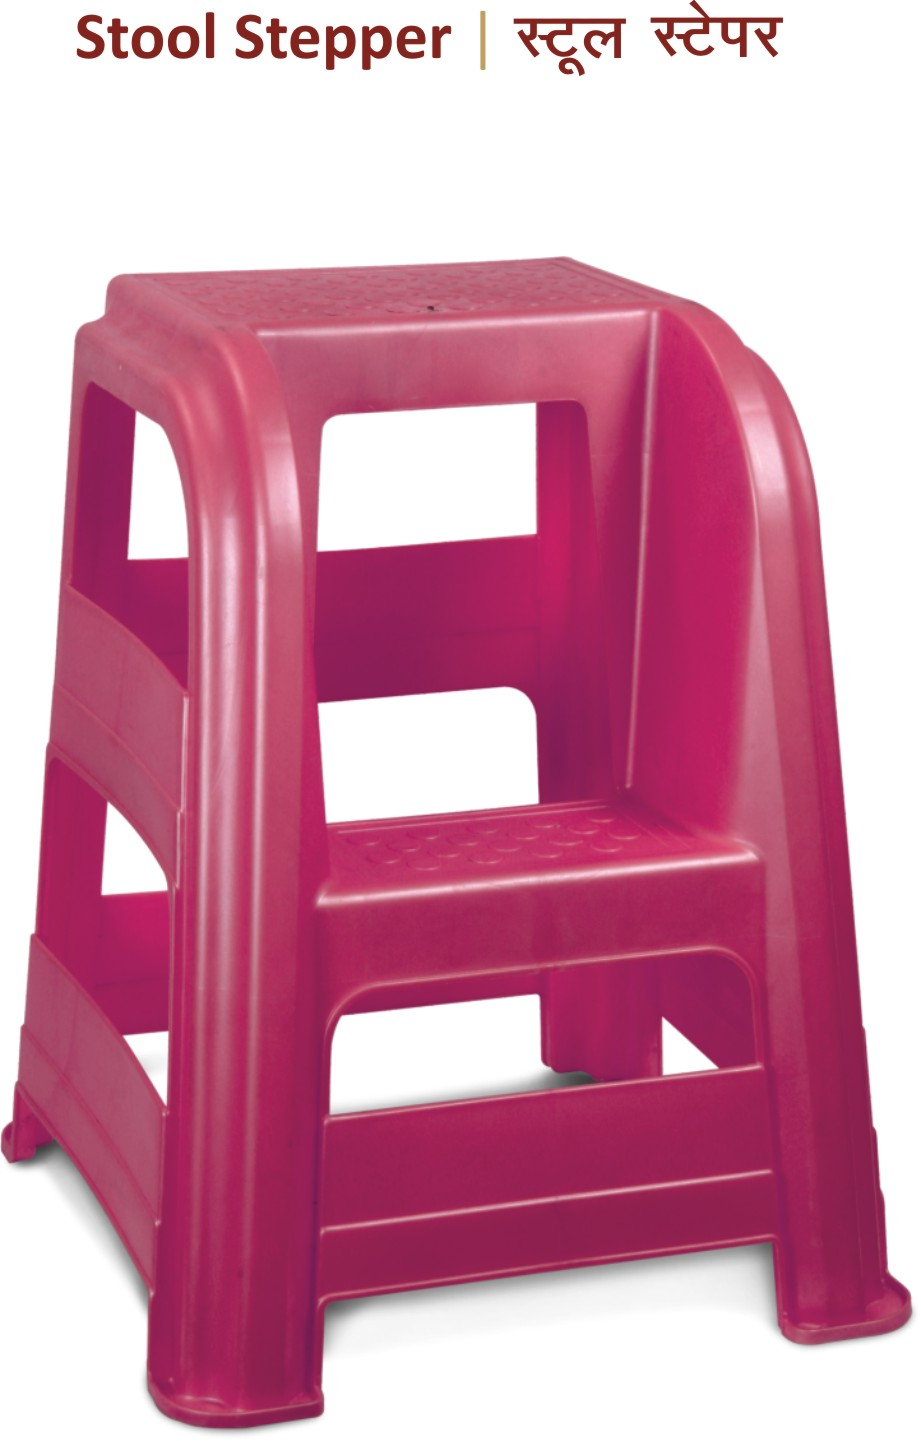 stool stepper